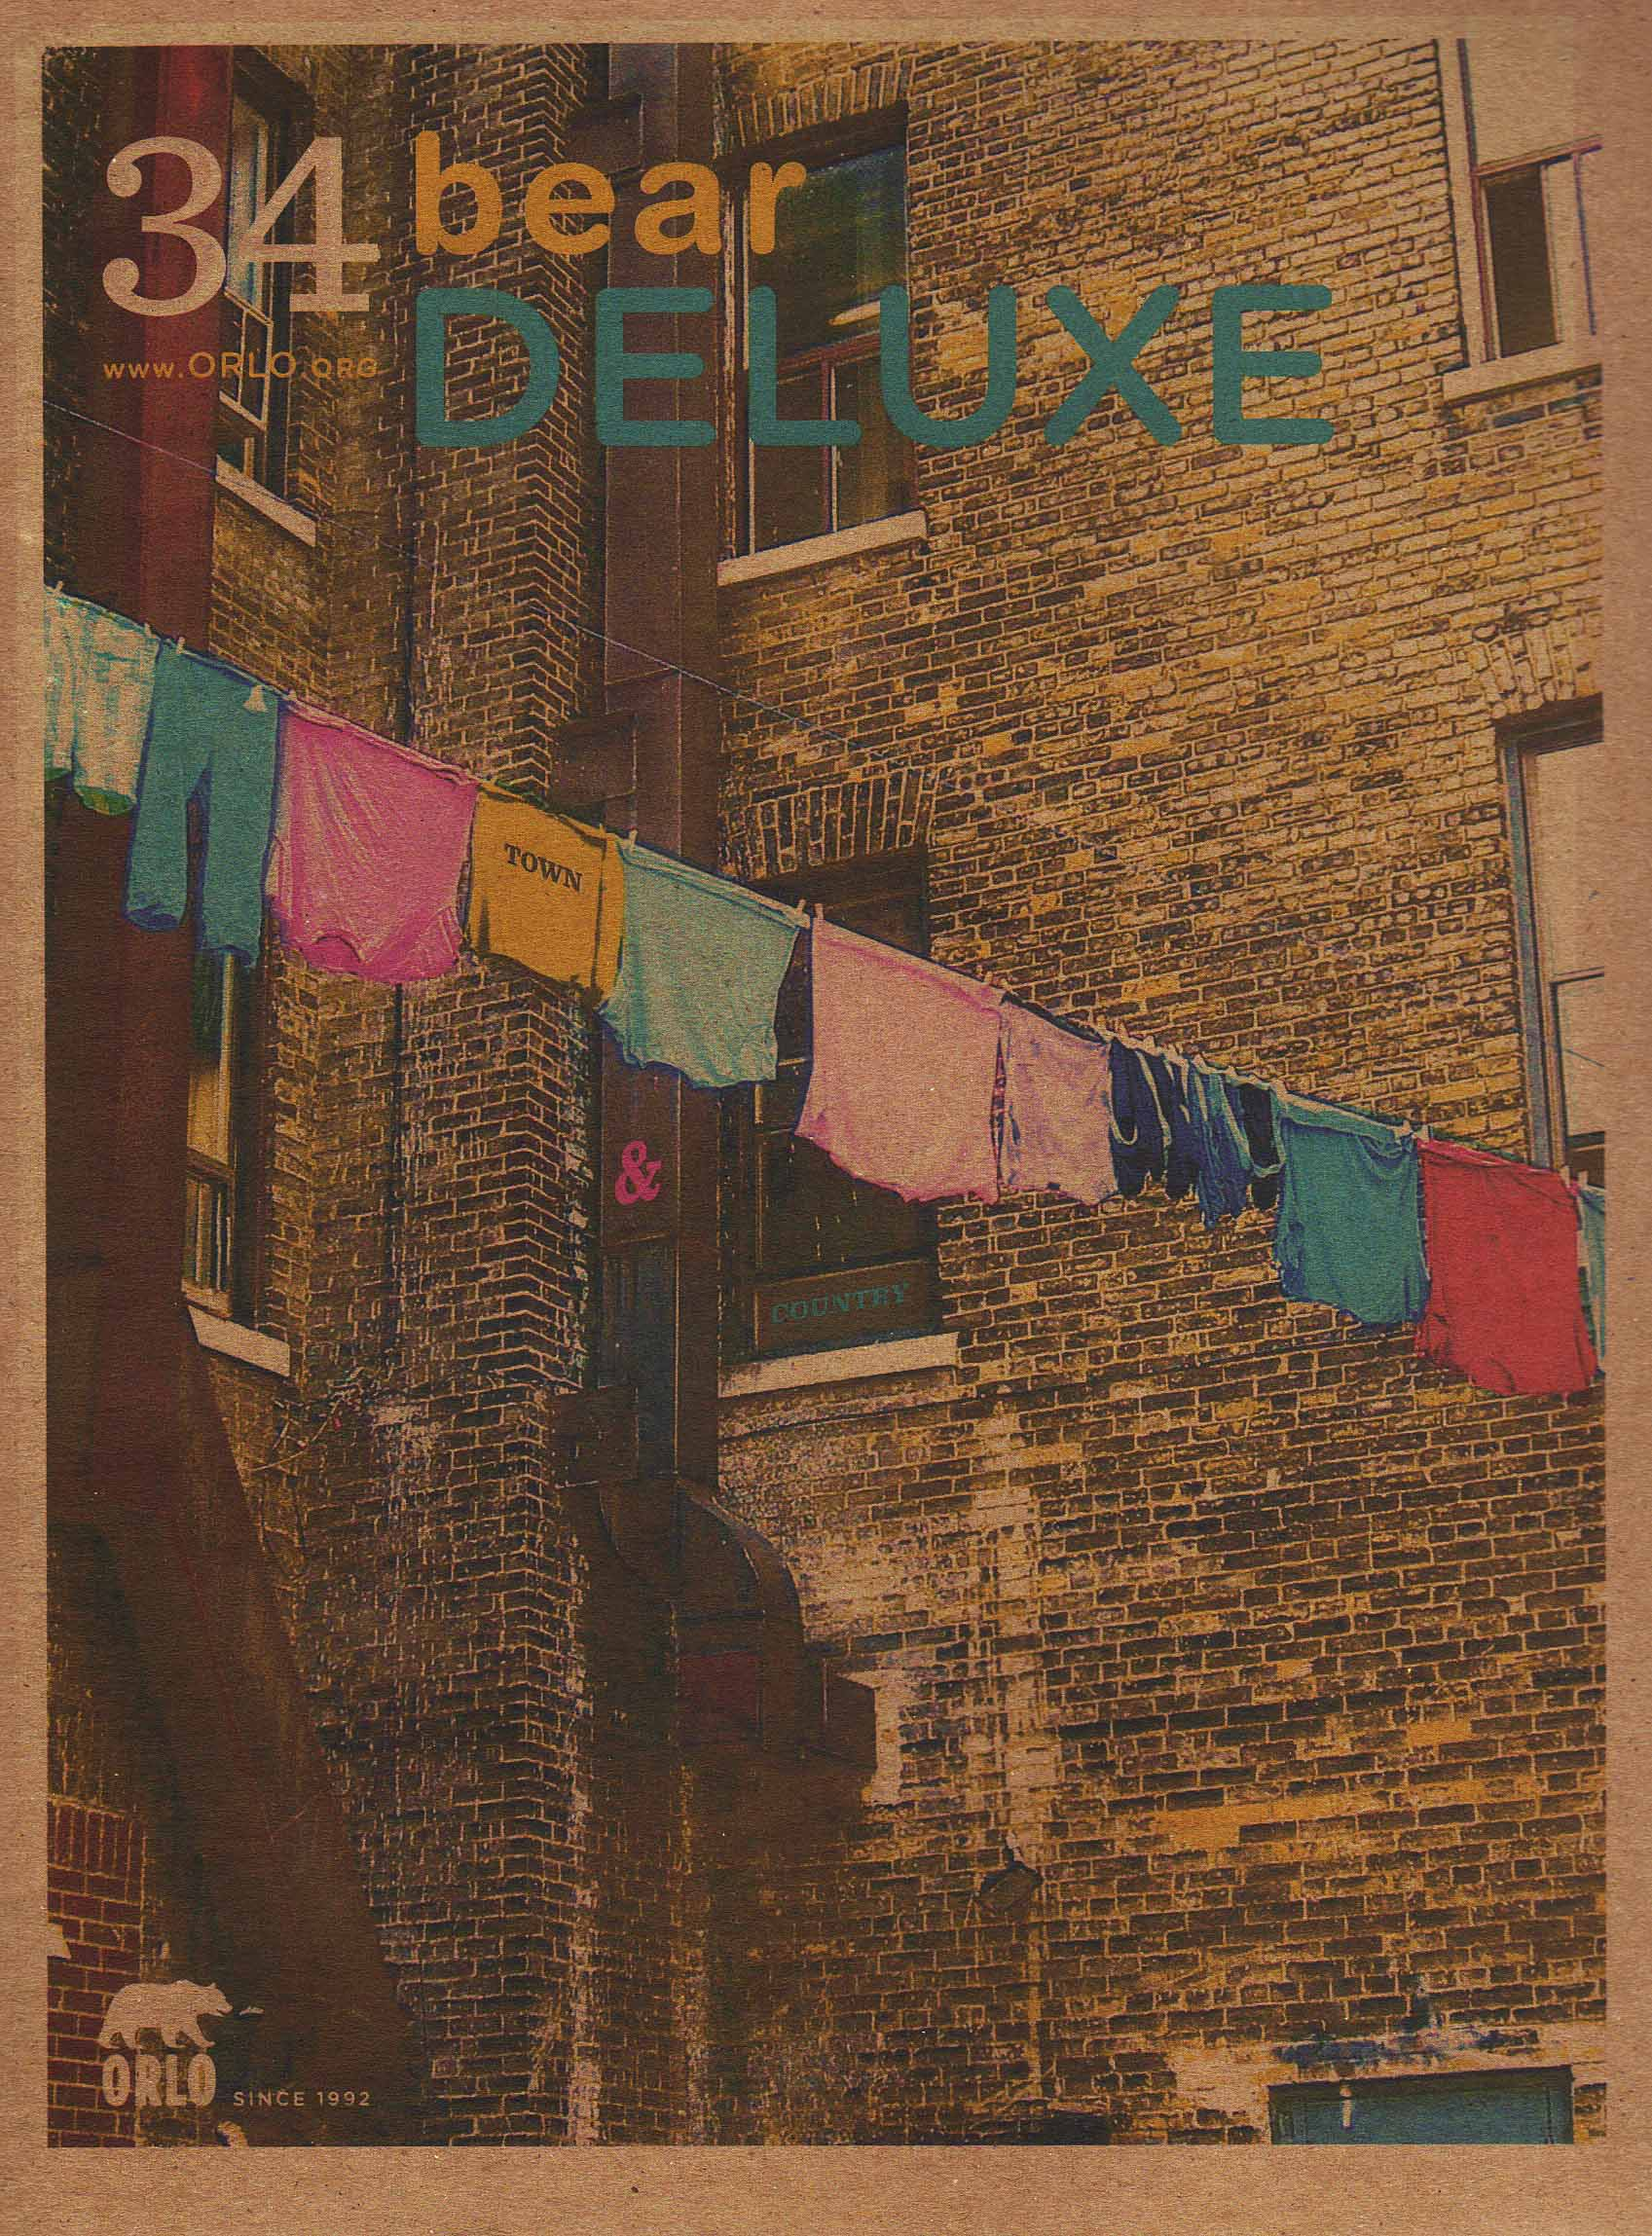 Bear Deluxe  magazine USA winter issue 2012-2013